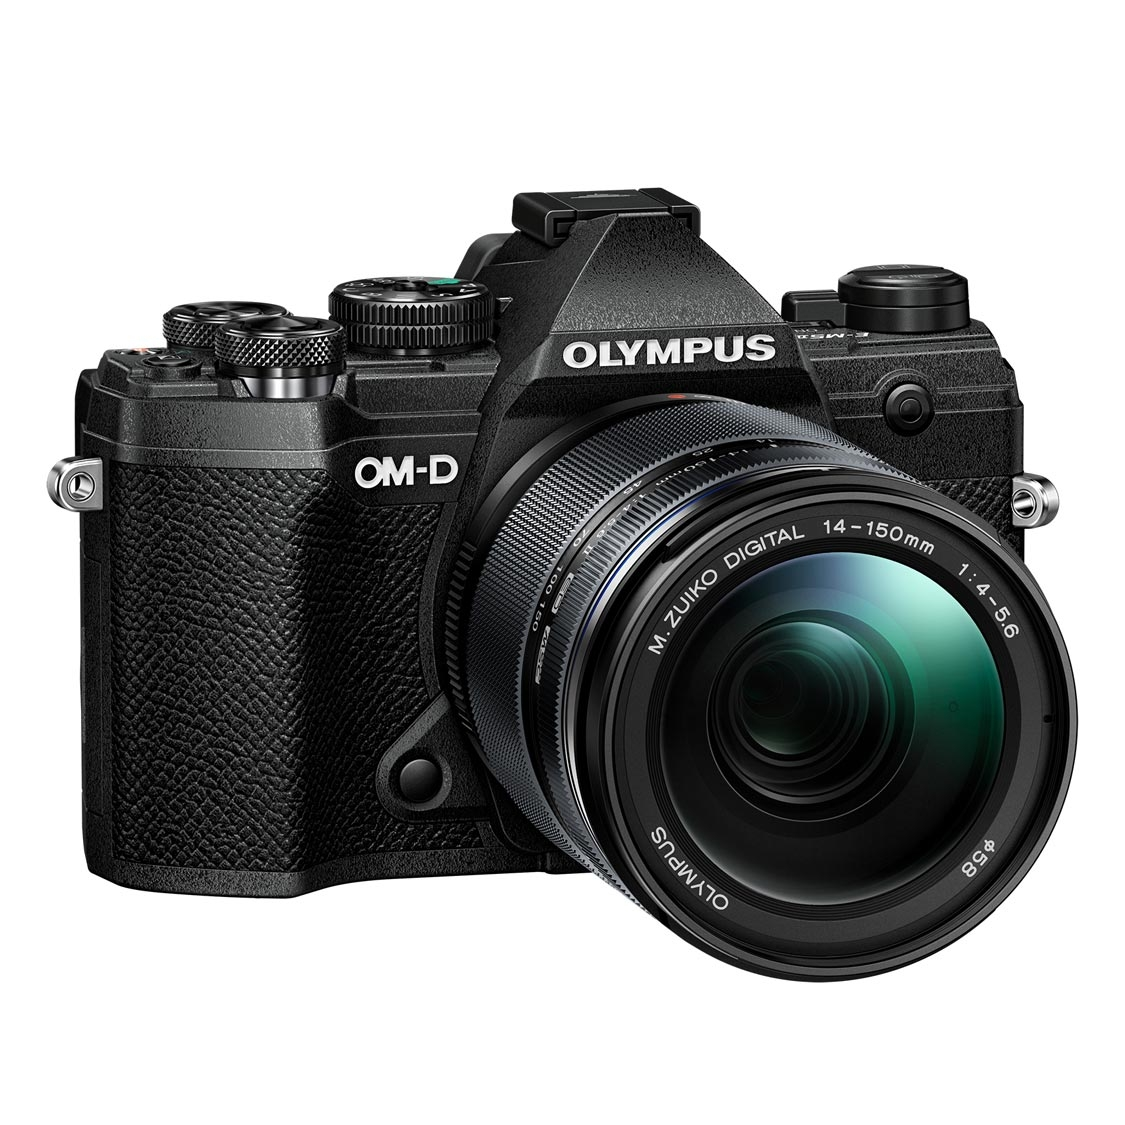 Olympus E-M5 Mark III Camera (black) with 14-150mm Lens